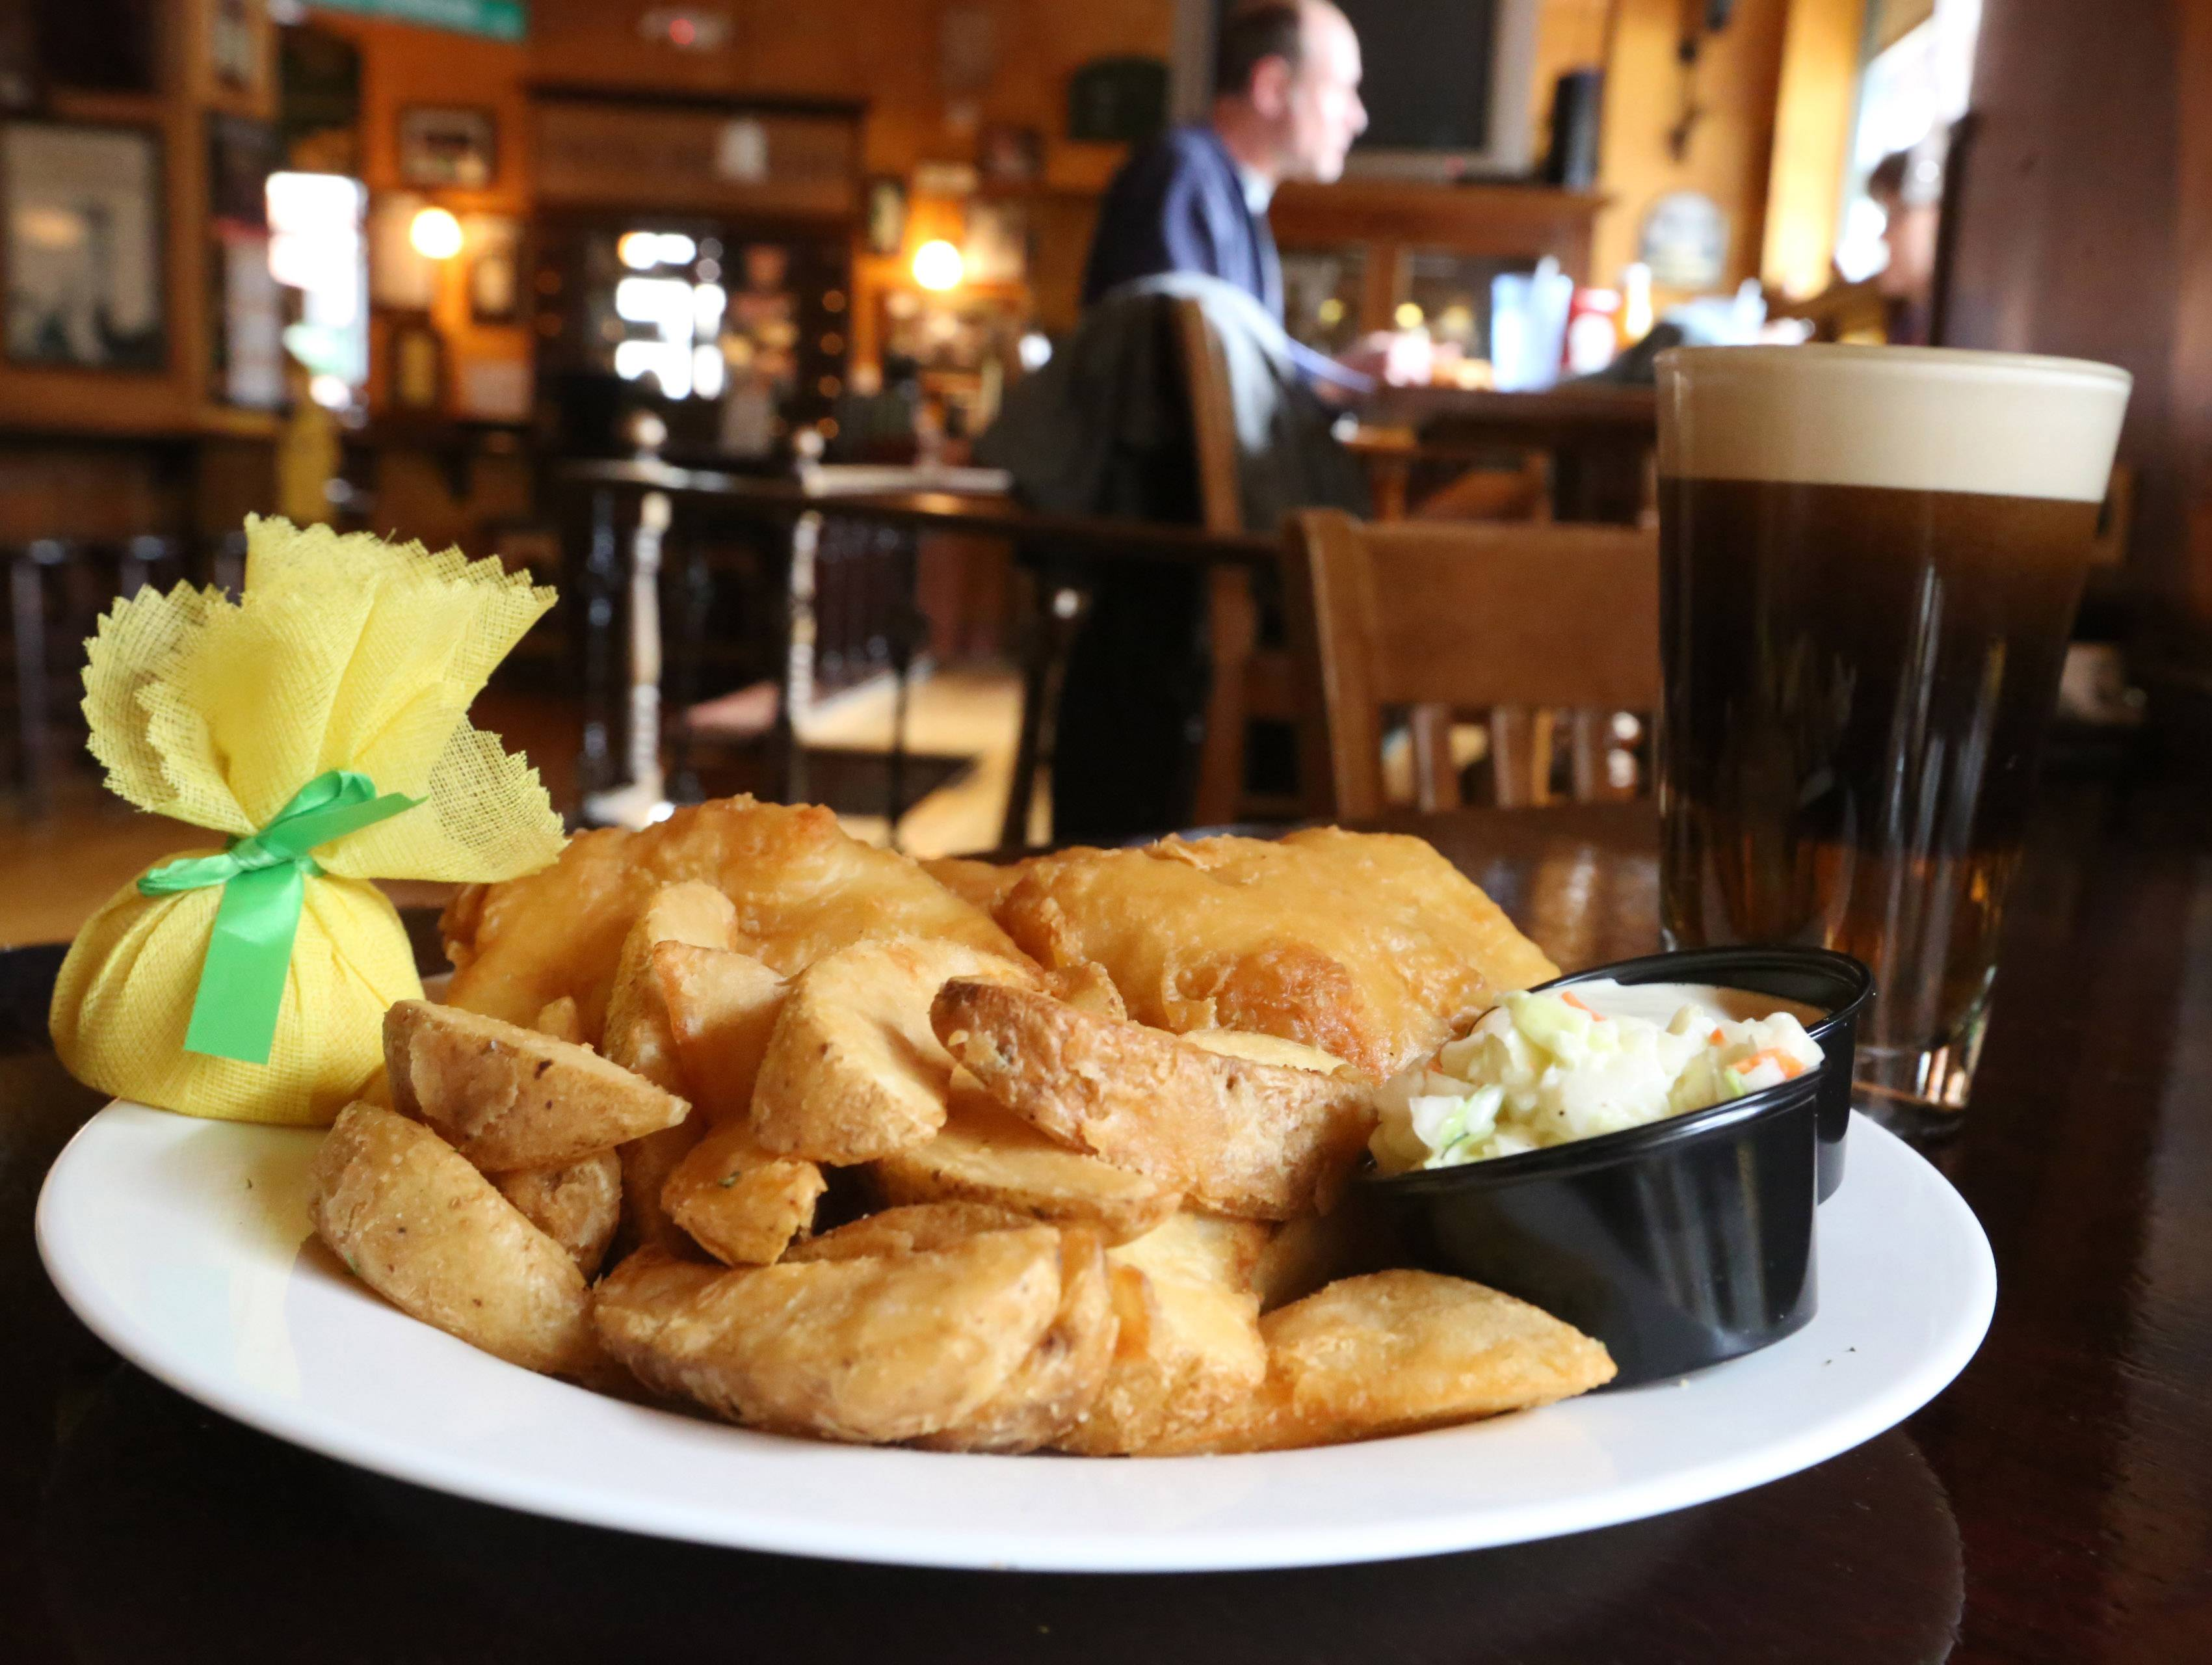 Dig in to some fish and chips with a half and half beer (half Harps and half Guinness) at the St. Patrick's Day celebration at Peggy Kinnane's Irish Restaurant and Pub in Arlington Heights.